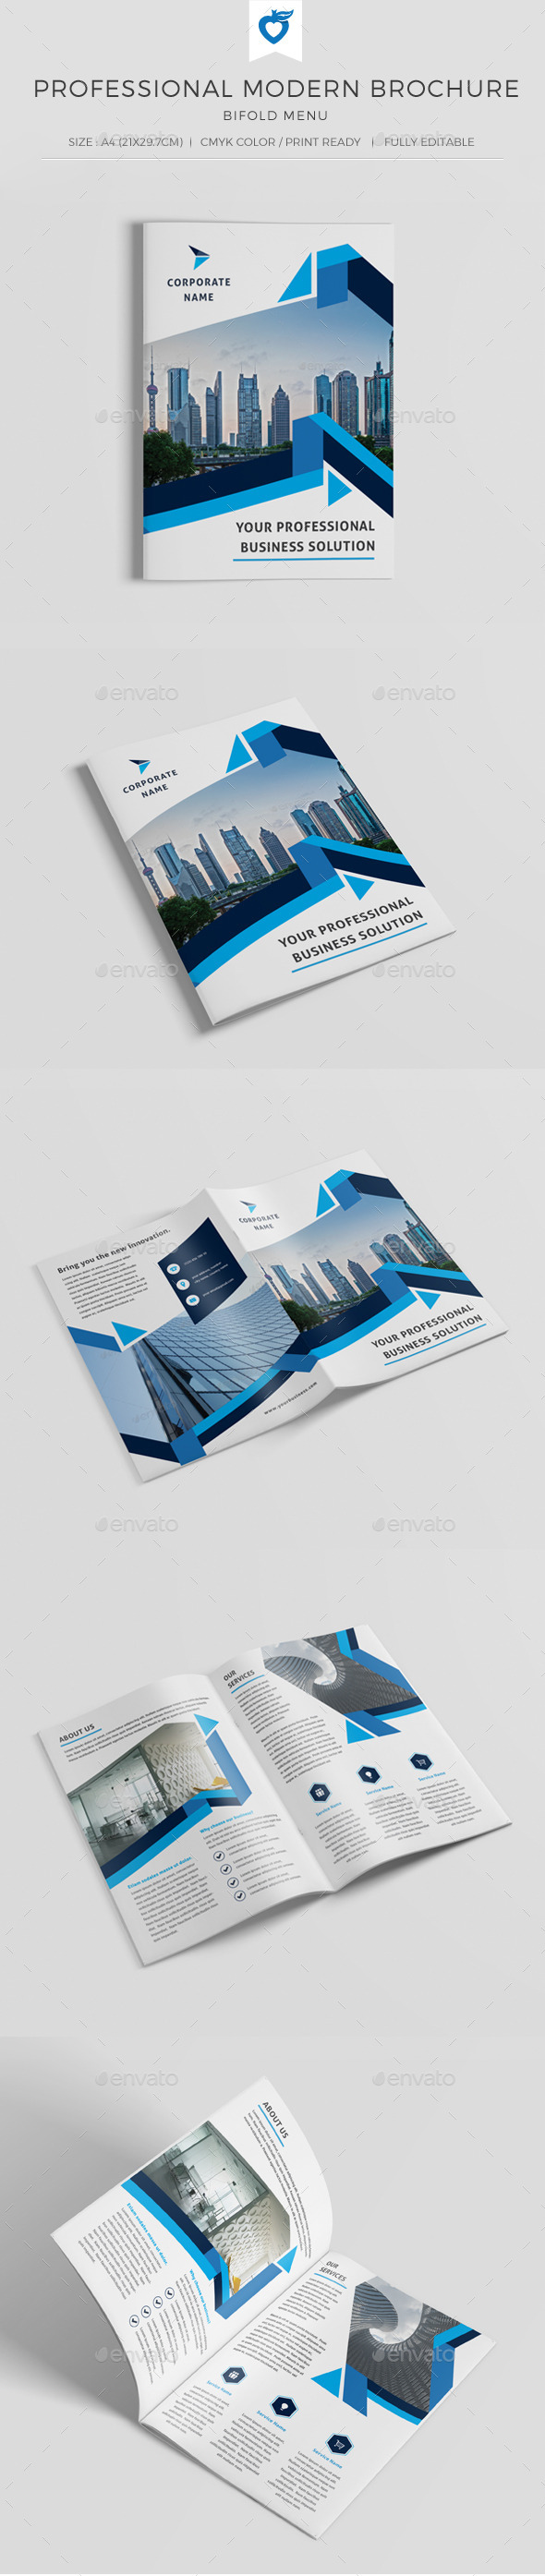 GraphicRiver Professional Modern Corporate Brochure 10440737